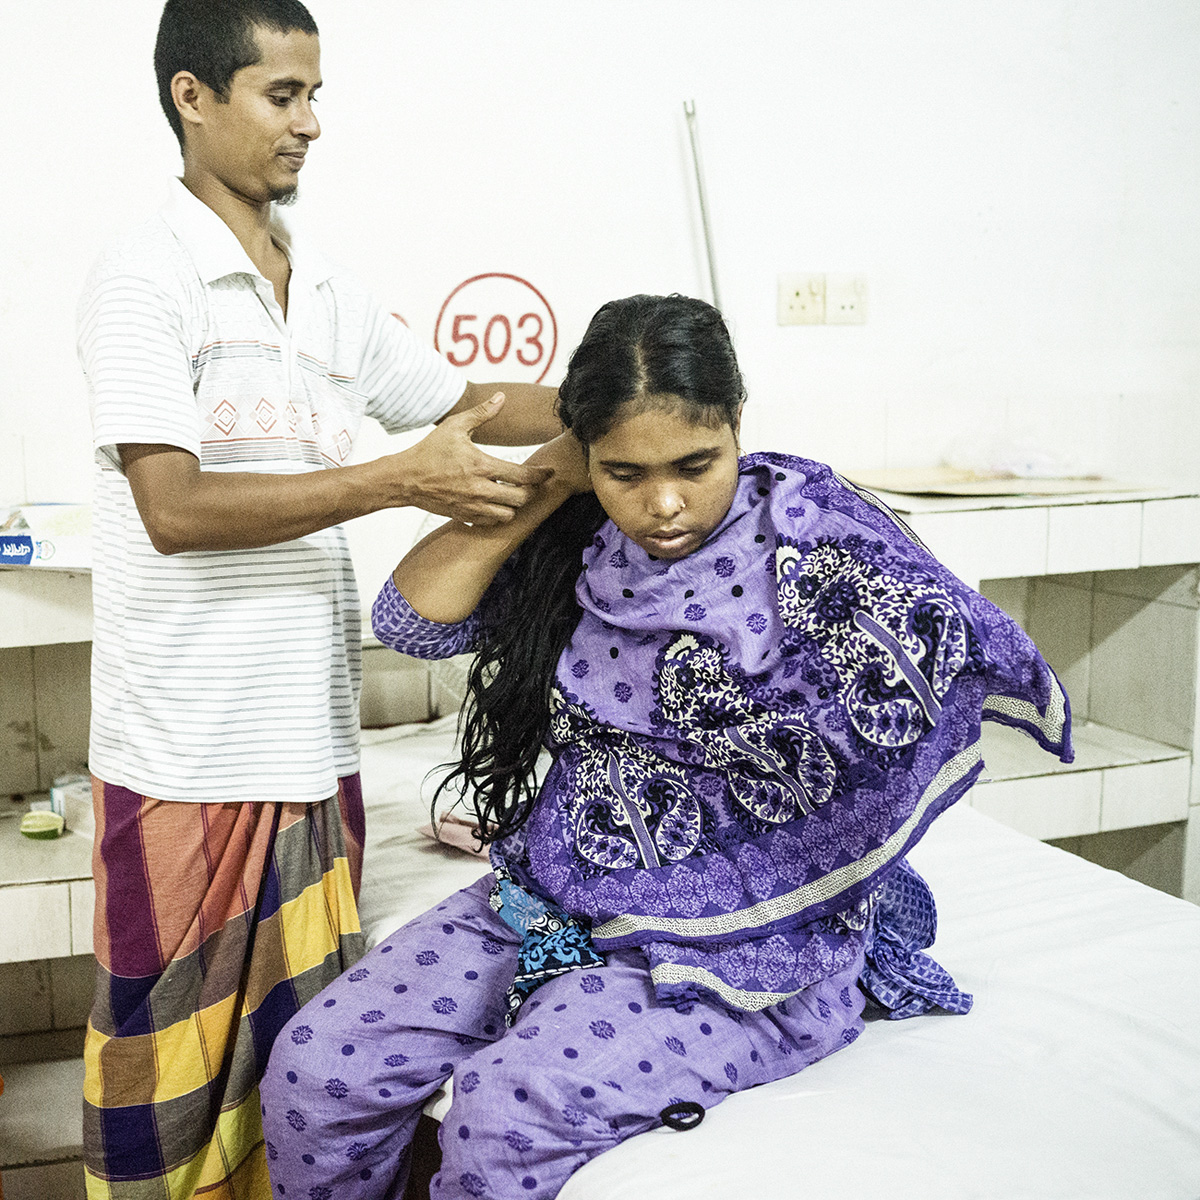 Rozina Begum, another survivor of the Rana Plaza collapse, lost her entire left hand during the collapse. She had to saw it off herself, while stuck under a beam.